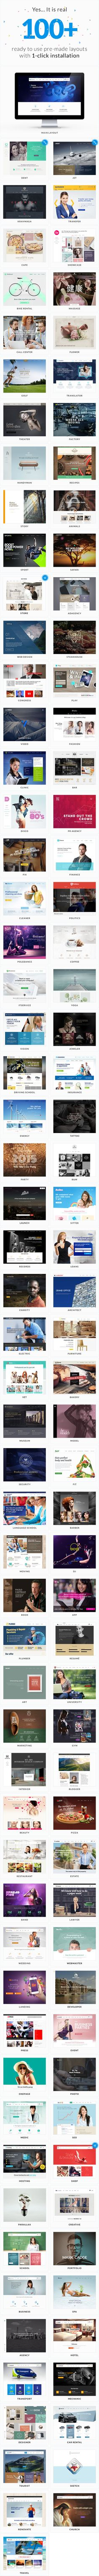 BeTheme - Responsive Multi-Purpose WordPress Theme | ThemeForest